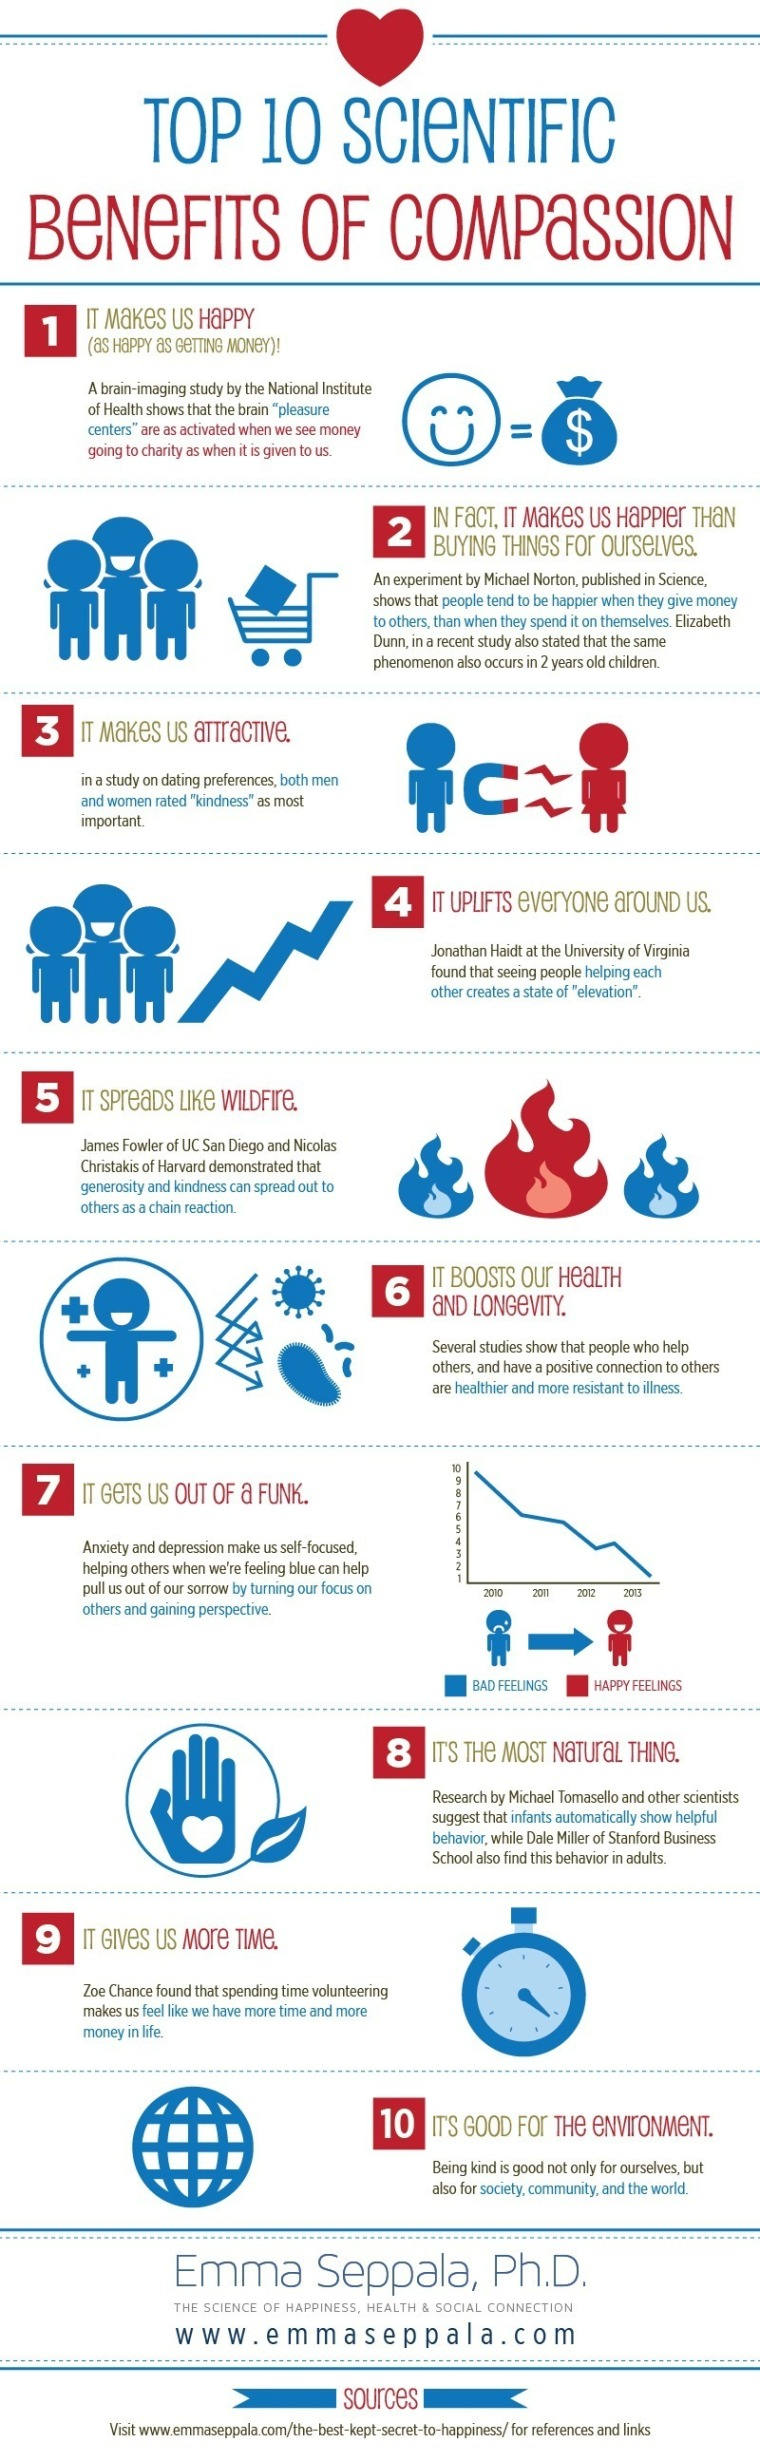 Top 10 Scientific Benefits of Compassion (Infographic)